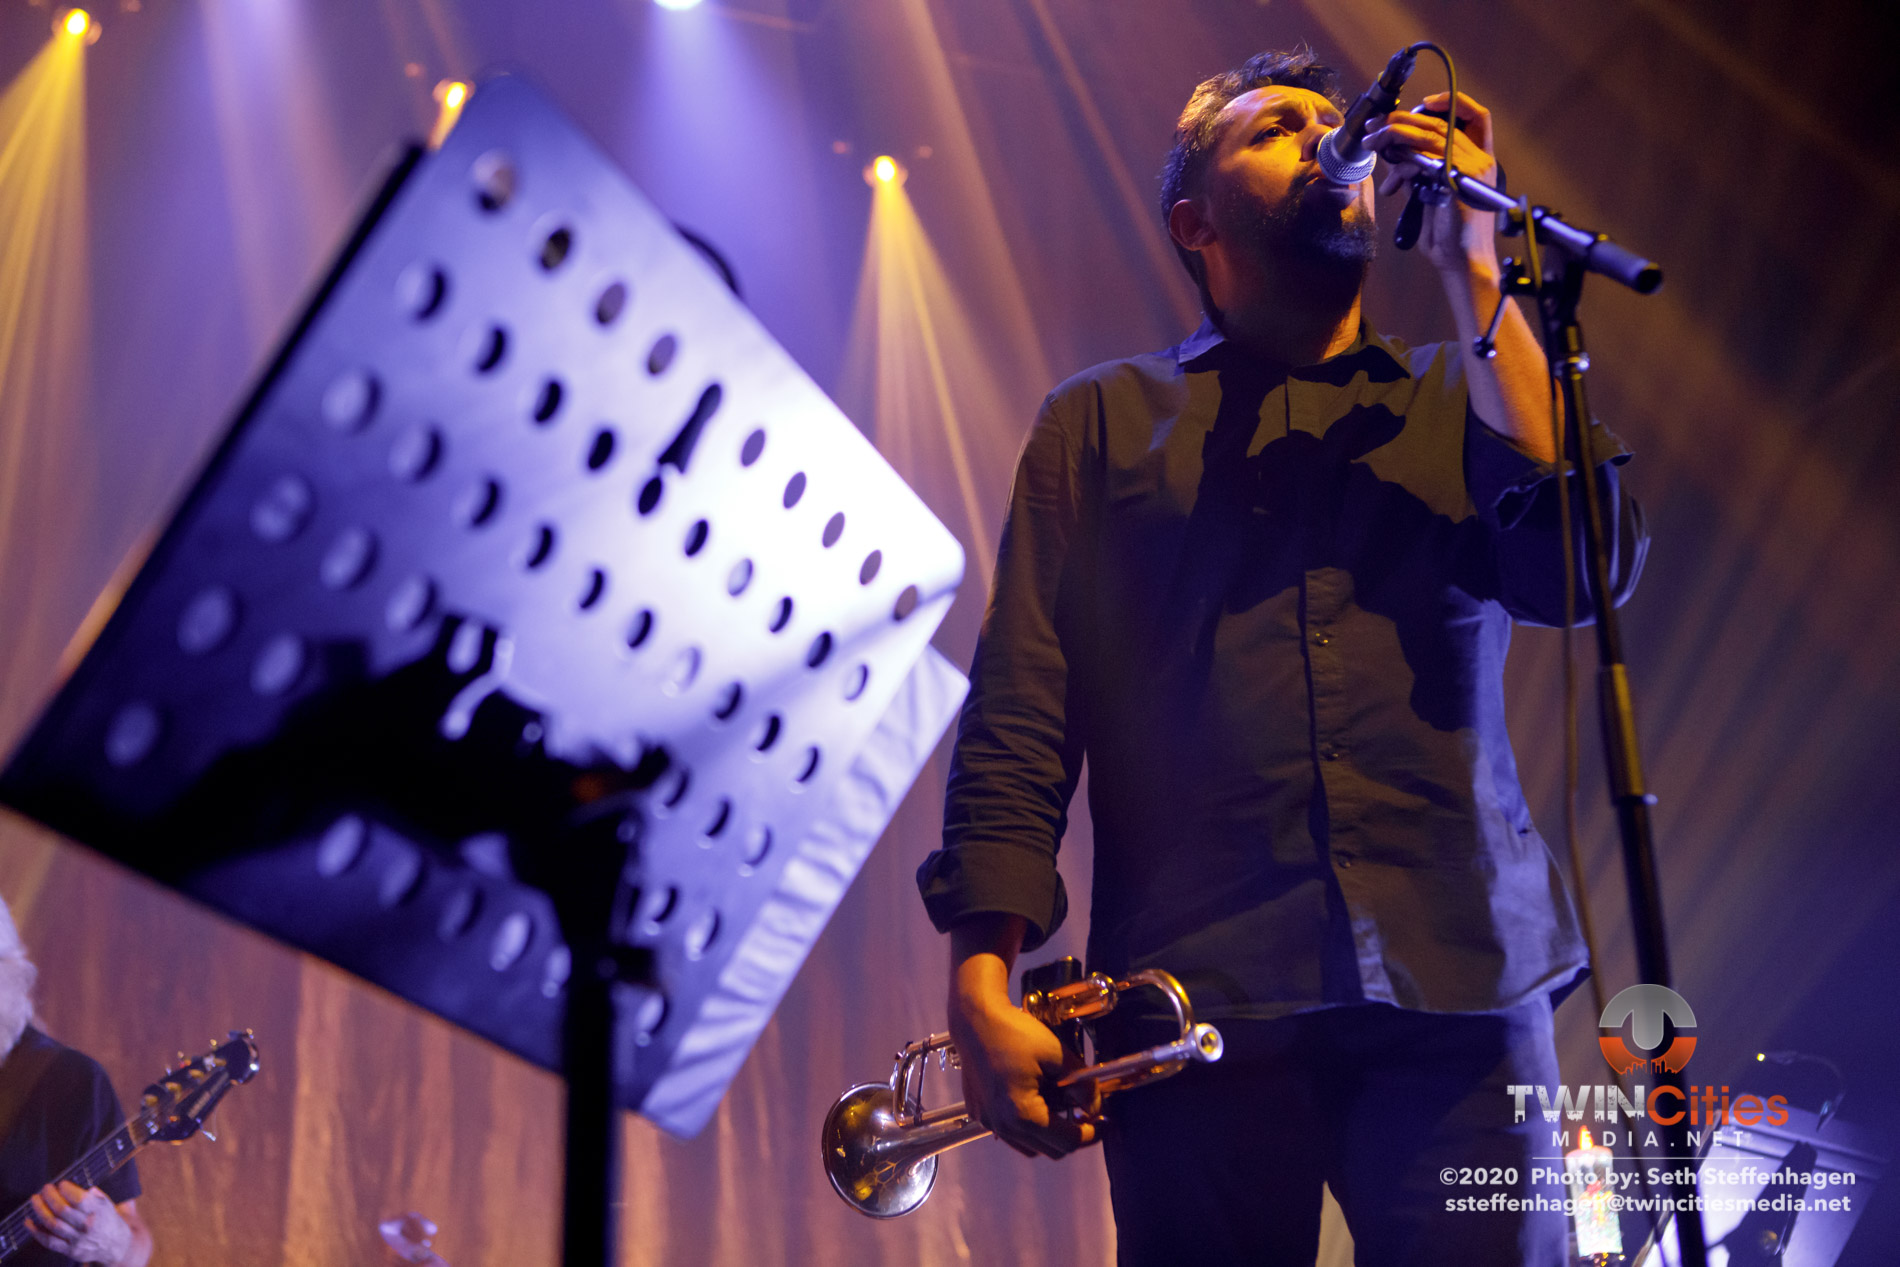 February 14, 2020 - Saint Paul, Minnesota, United States - Calexico And Iron & Wine live in concert at the Palace Theatre along with Madison Cunningham as the opener.  (Photo by Seth Steffenhagen/Steffenhagen Photography)